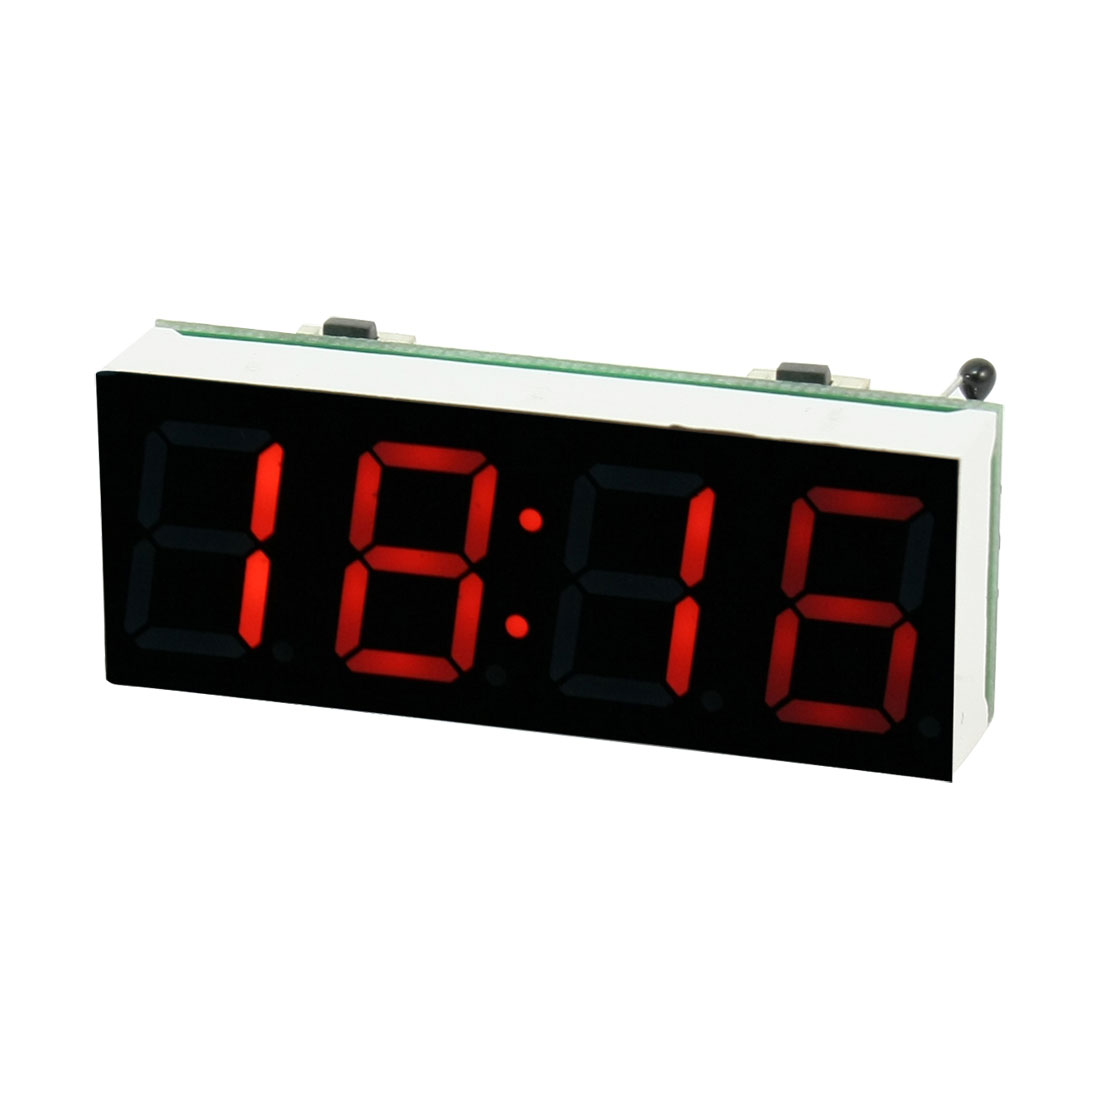 "Red LED 4 Digits 0.56"" Display Electronic Clock Module for DIY MCU"